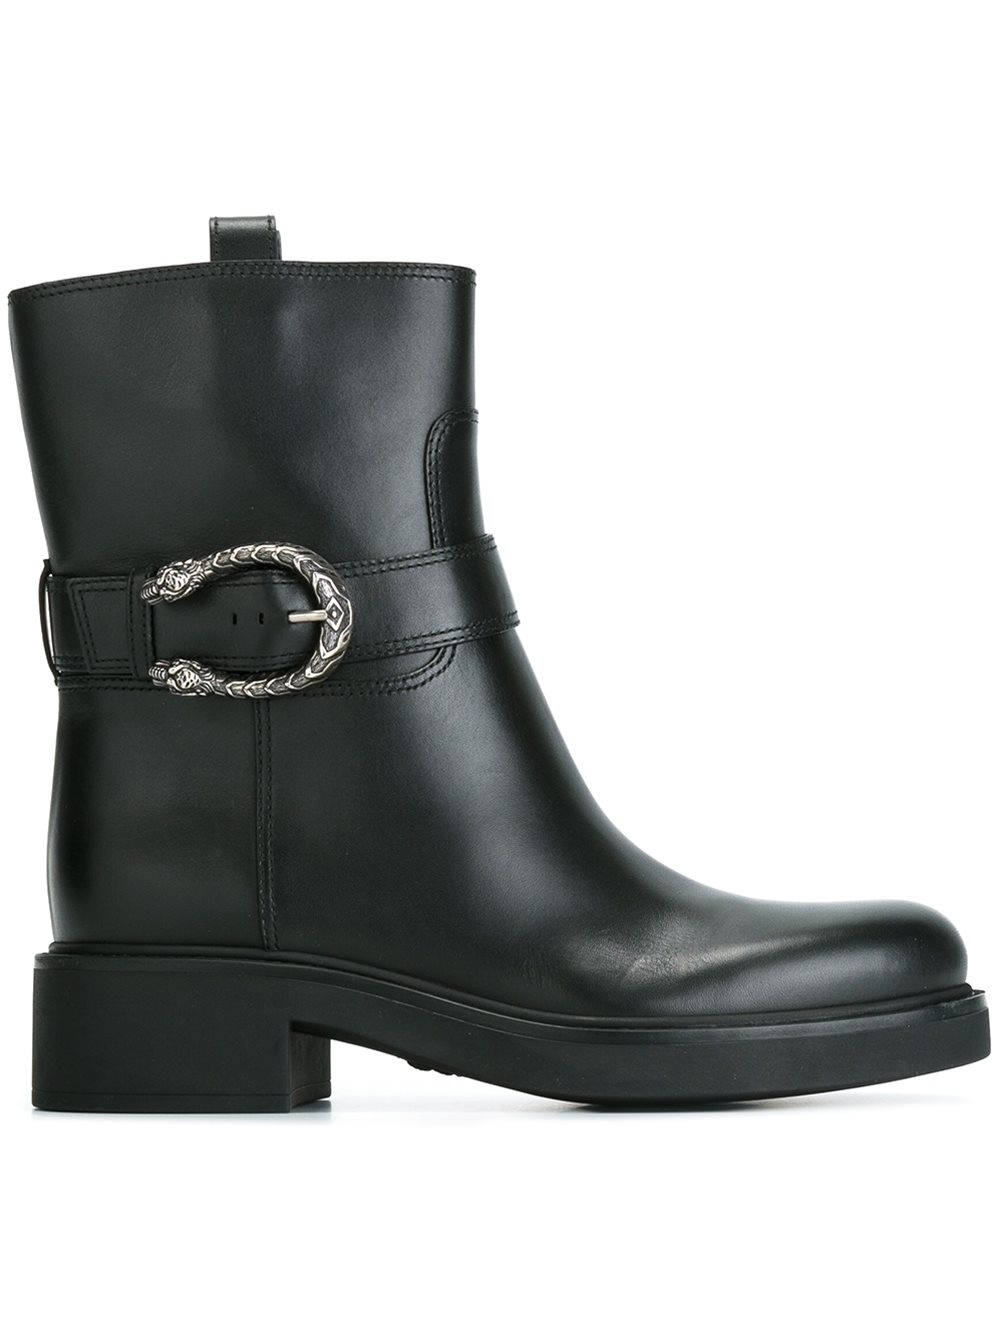 Gucci Dionysus Leather Moto Boots In Black Lyst